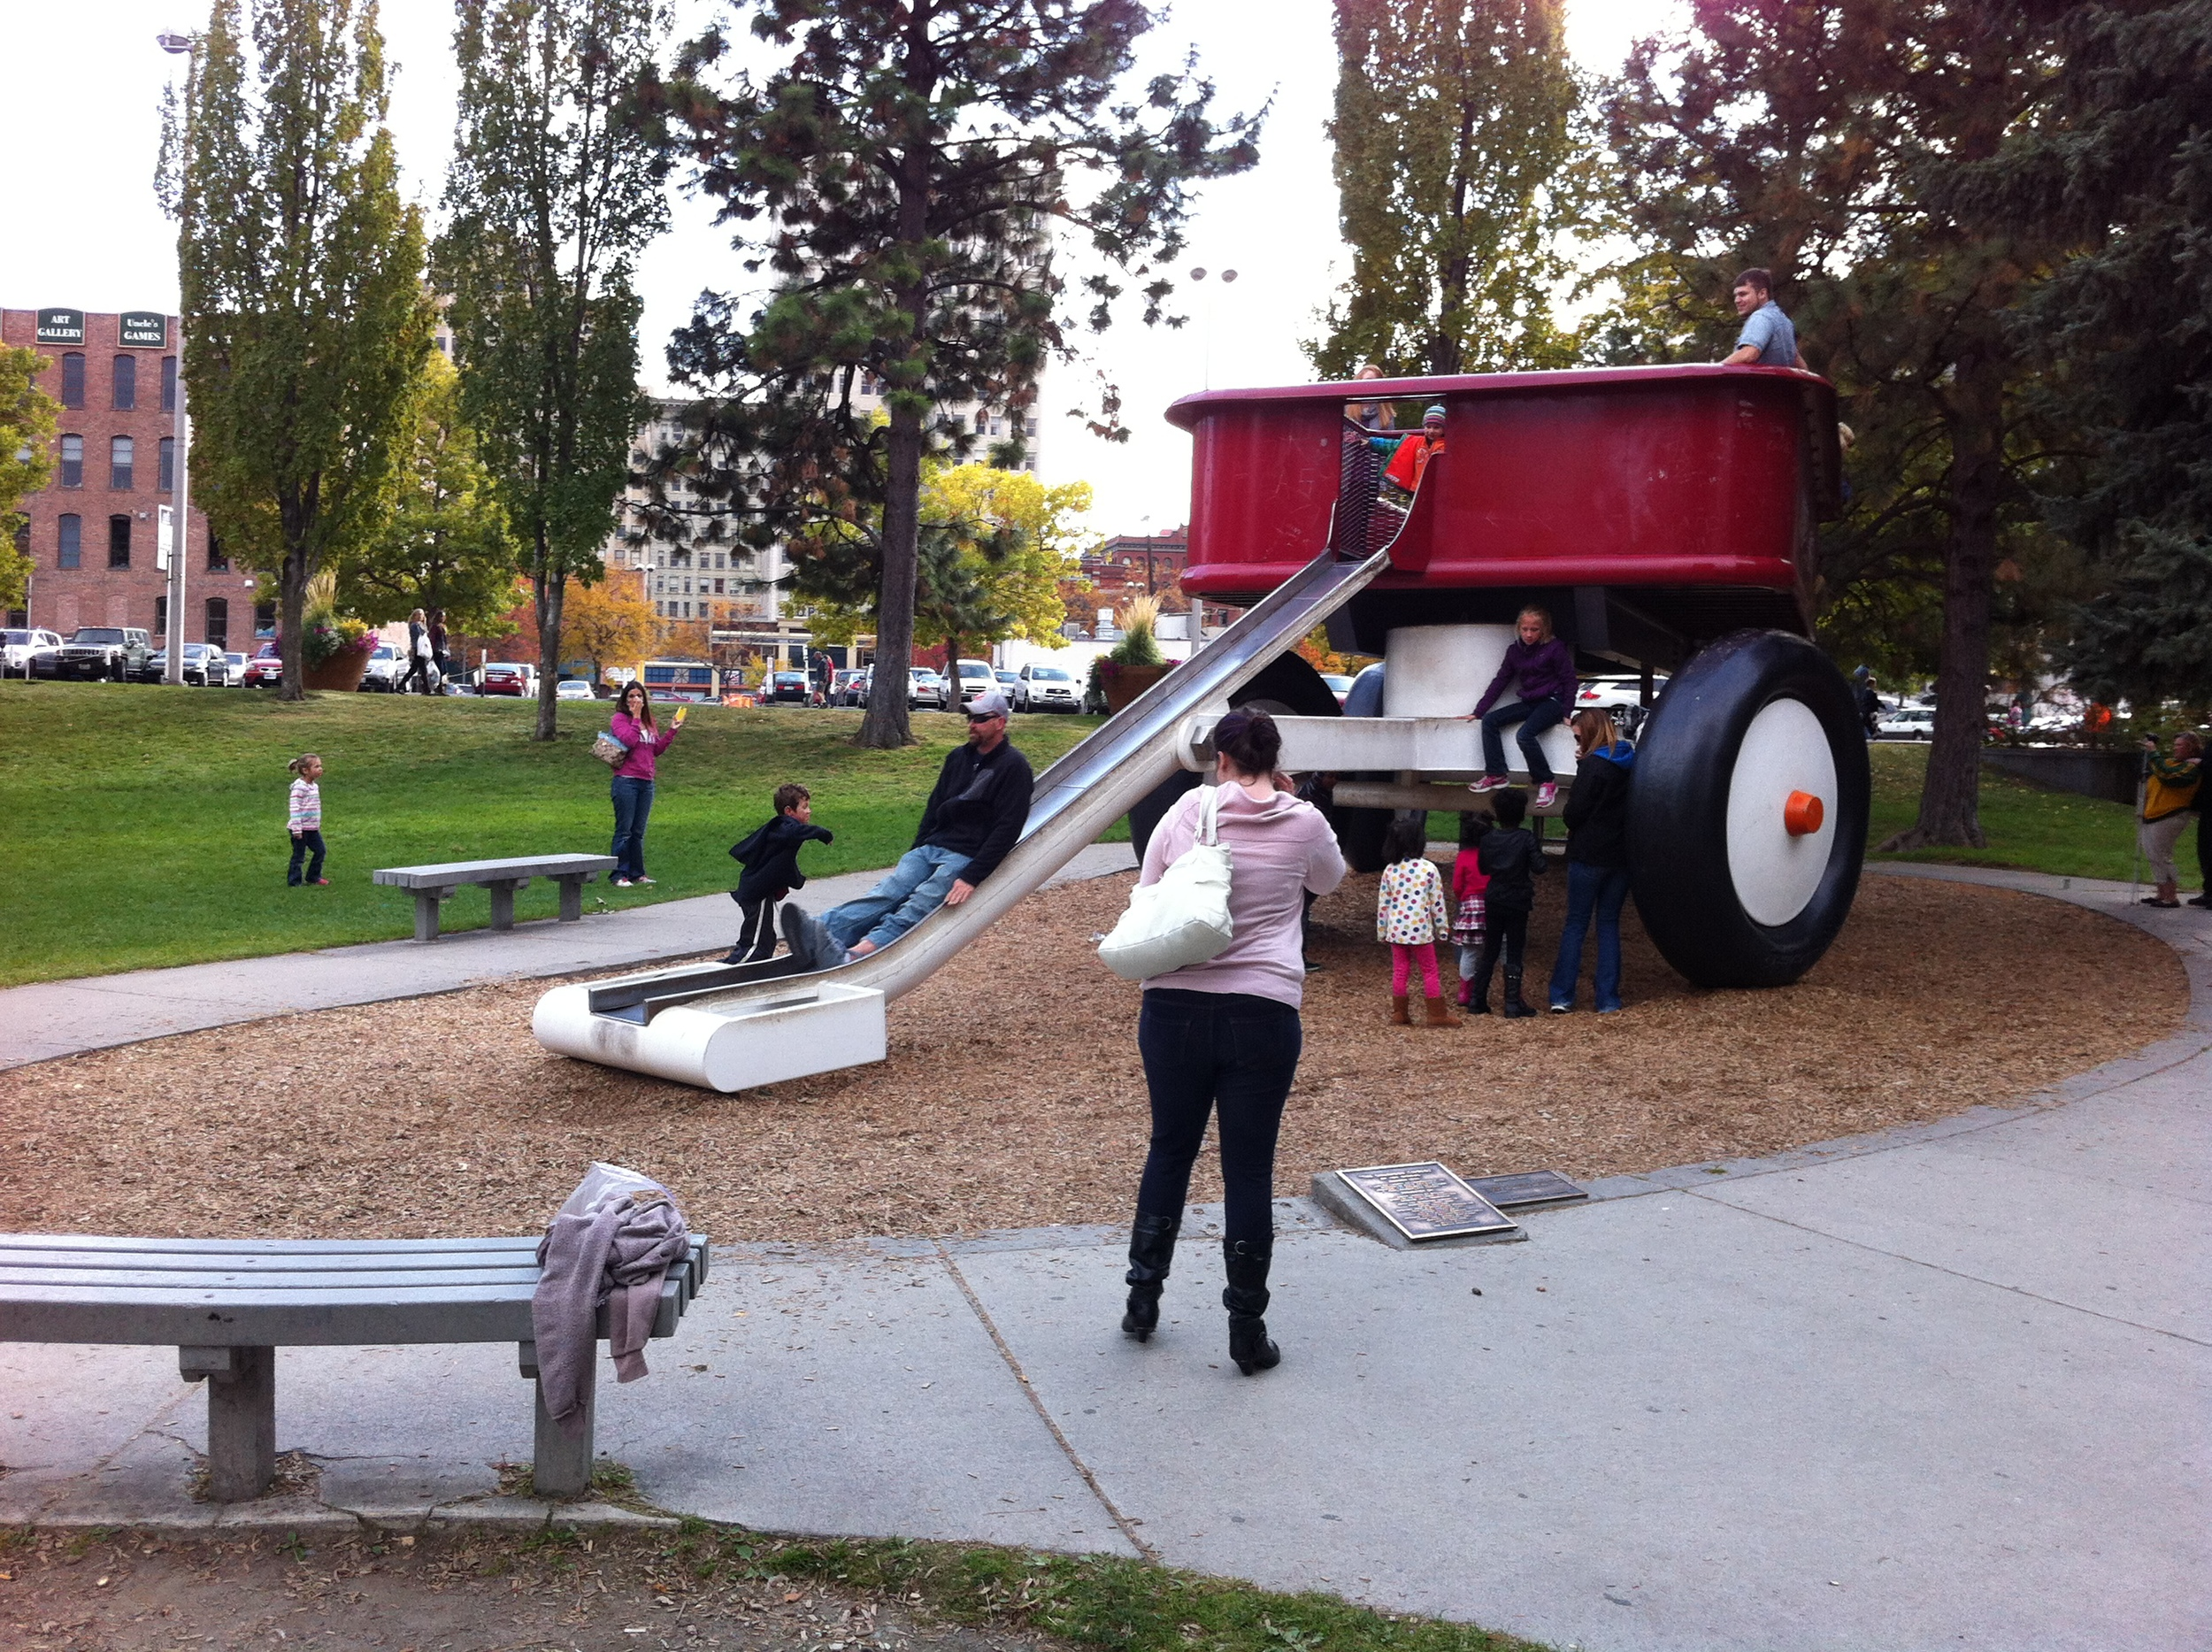 Every downtown needs a big red wagon or the equivalent in one of their urban parks!